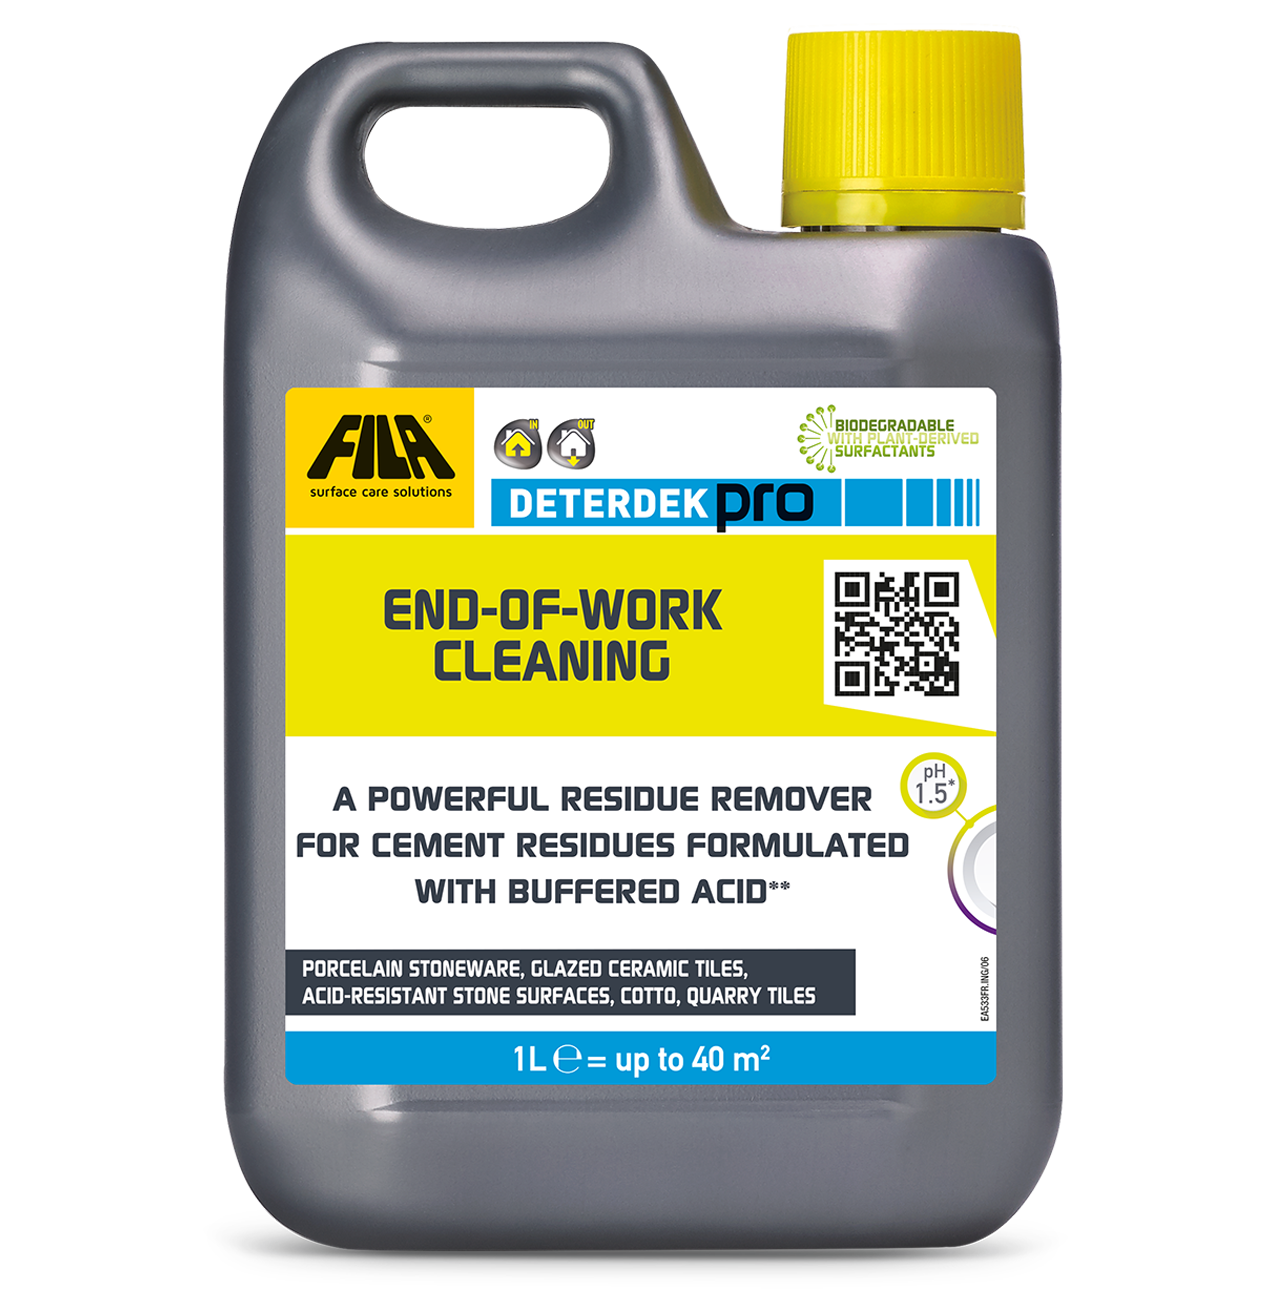 Thumbnail DETERDEK PRO - End-of-work cleaning